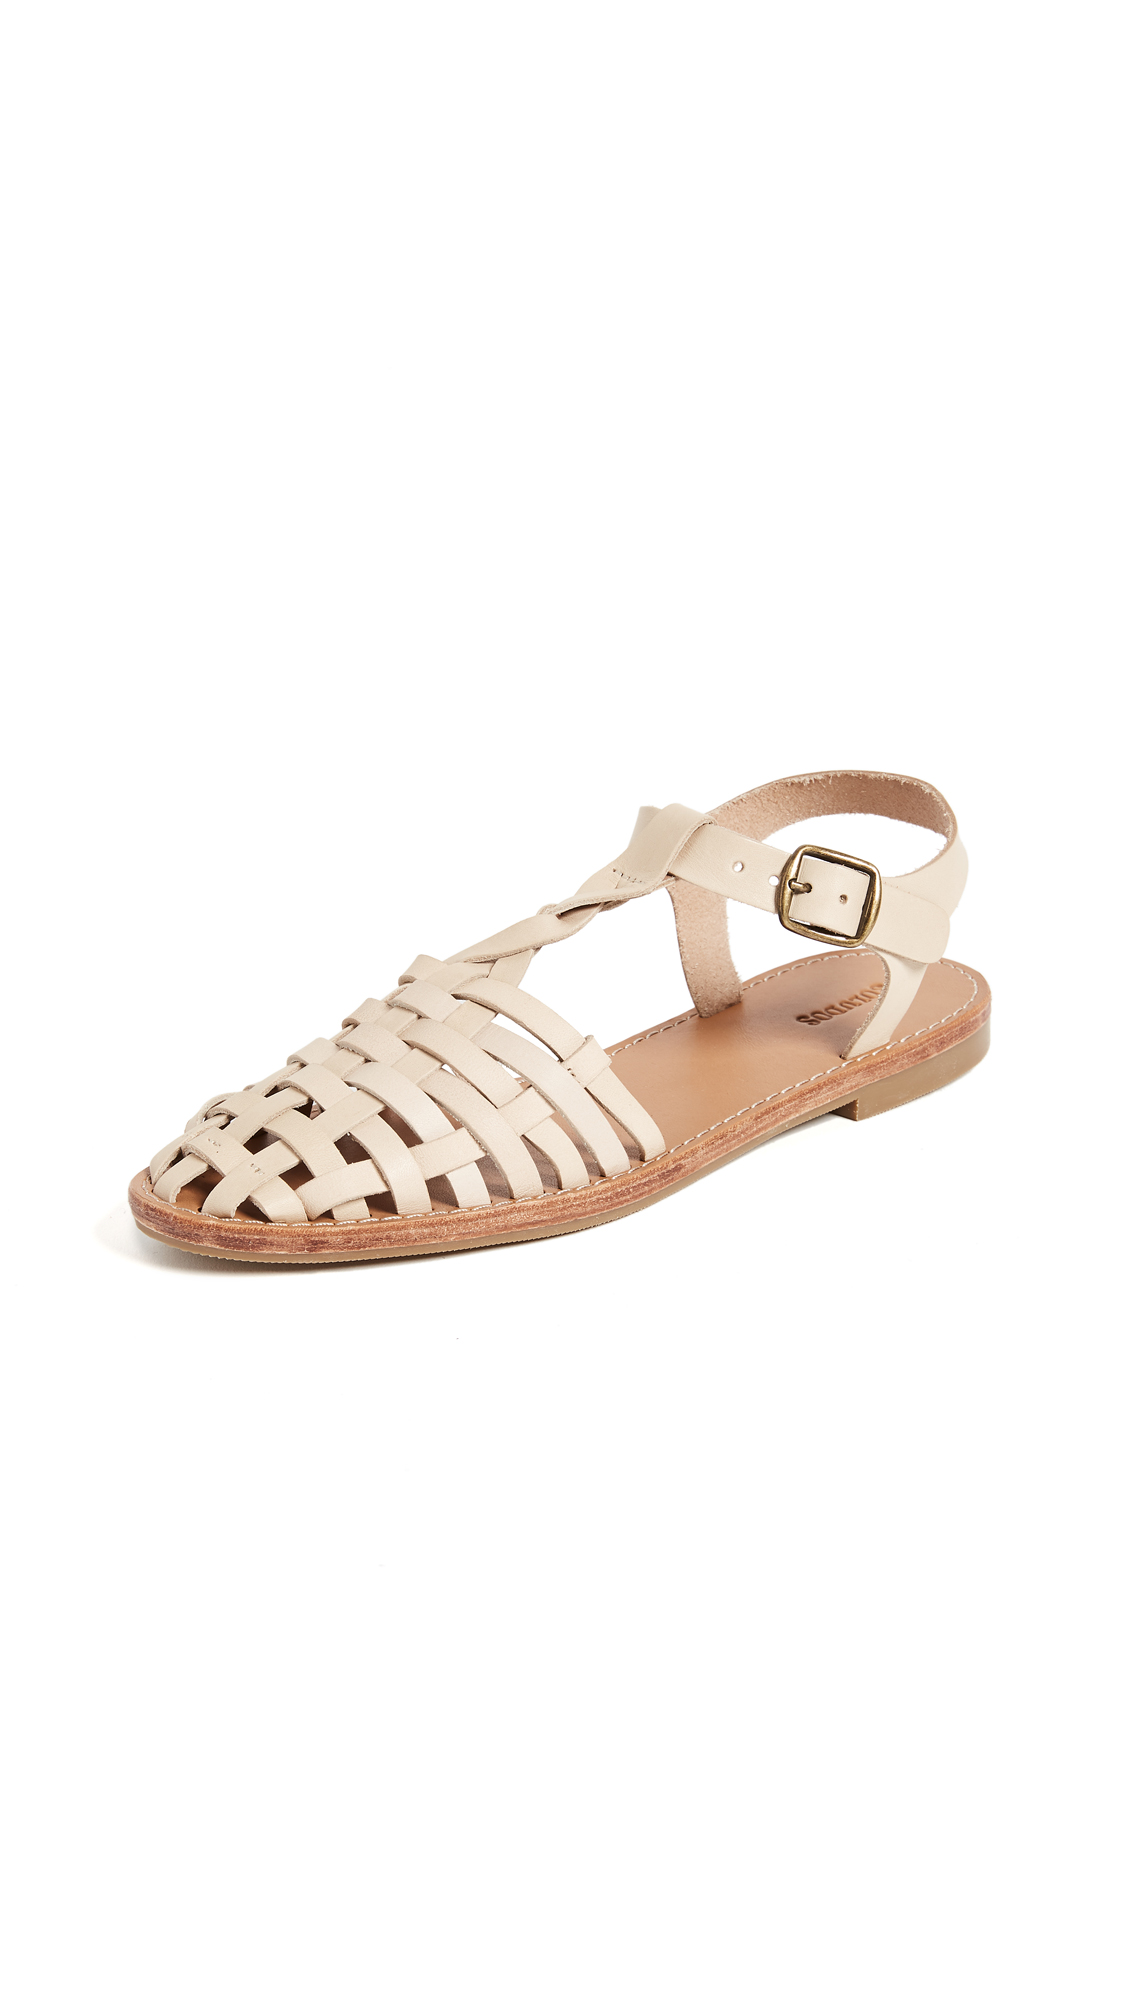 Soludos Woven Fisherman Sandals - Bisque